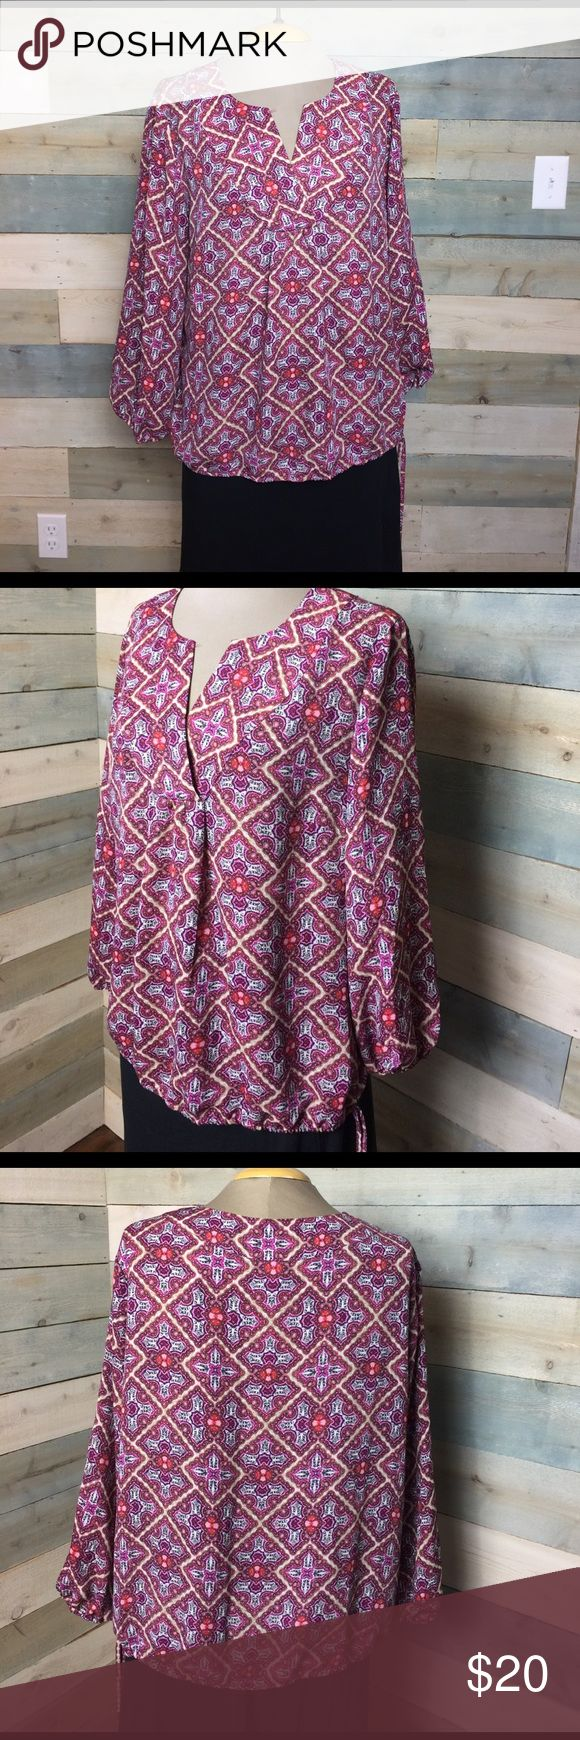 Boho Peasant Blouse laundry Shelli Segal L Pink Mass listing, will add details shortly Laundry by Shelli Segal Tops Blouses